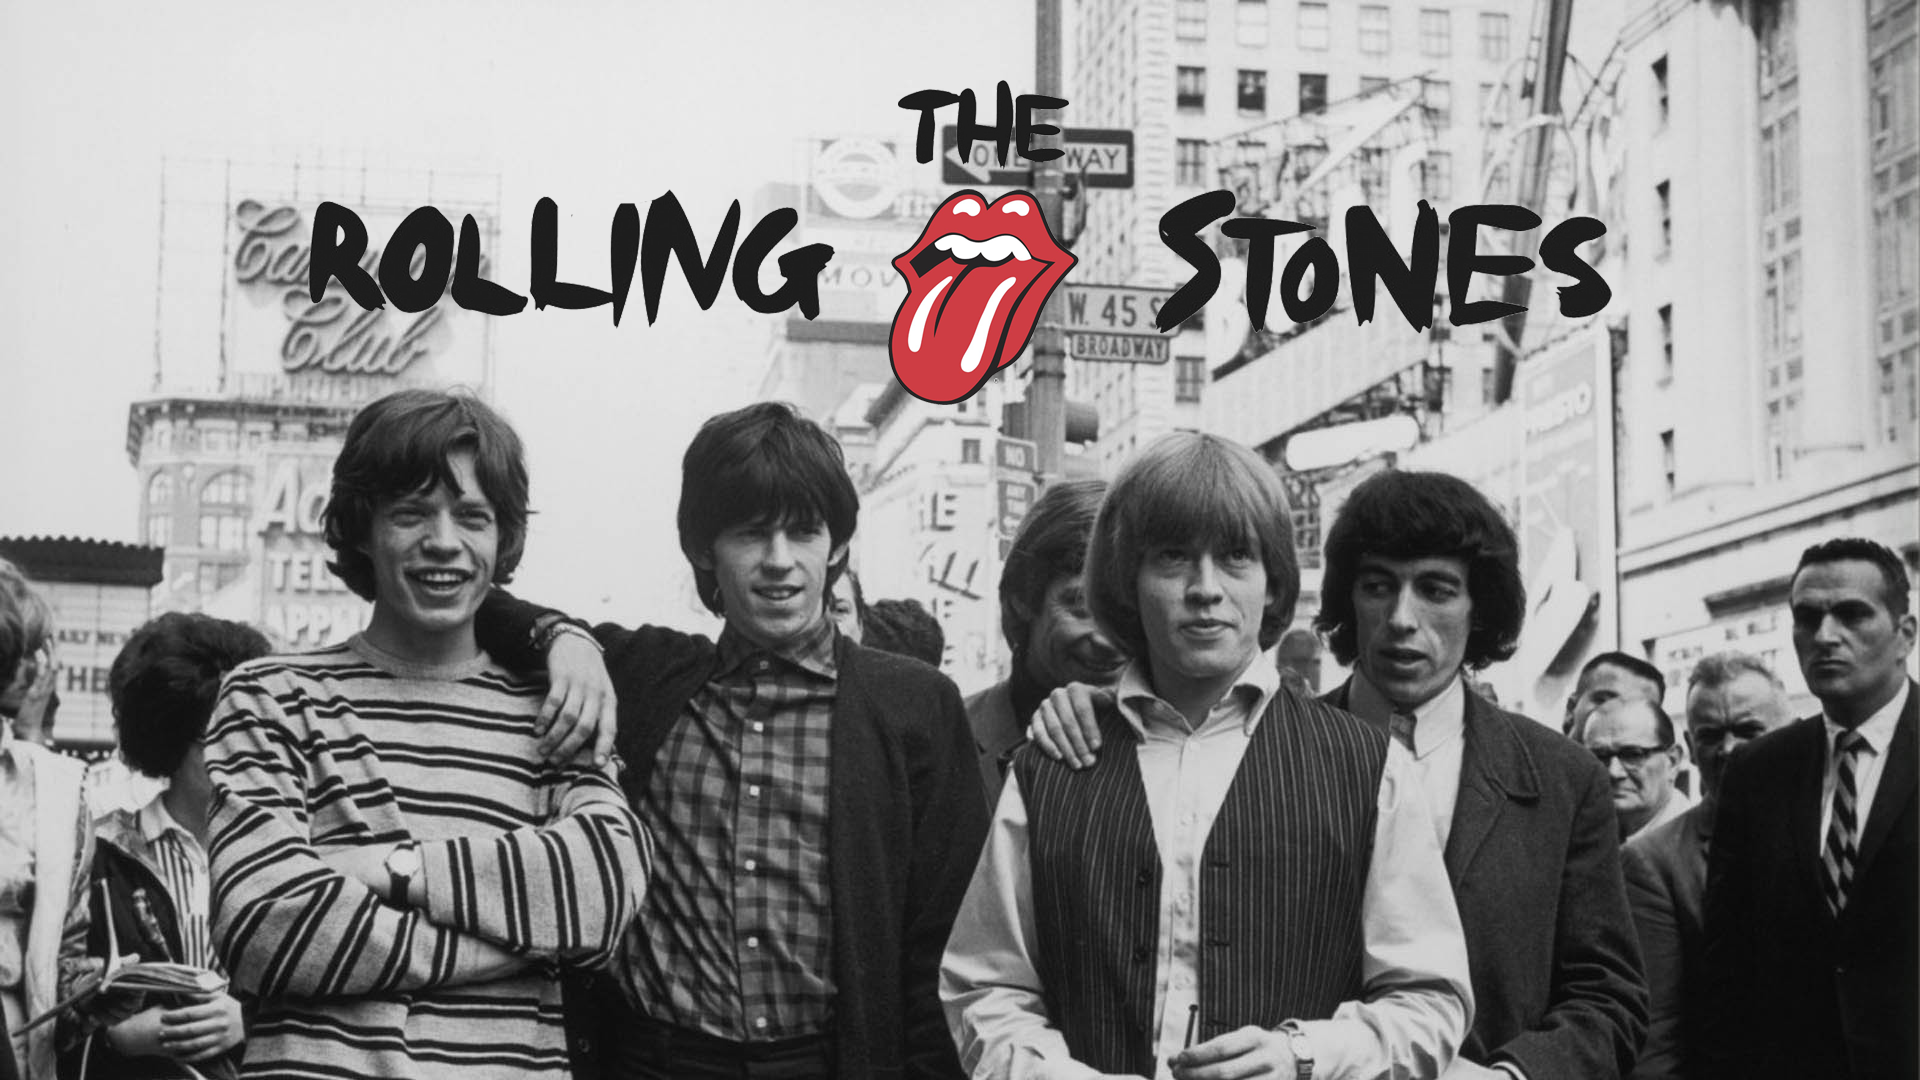 Rolling Stones Wallpaper that I made [1920x1080] in 2020 Stone 1920x1080